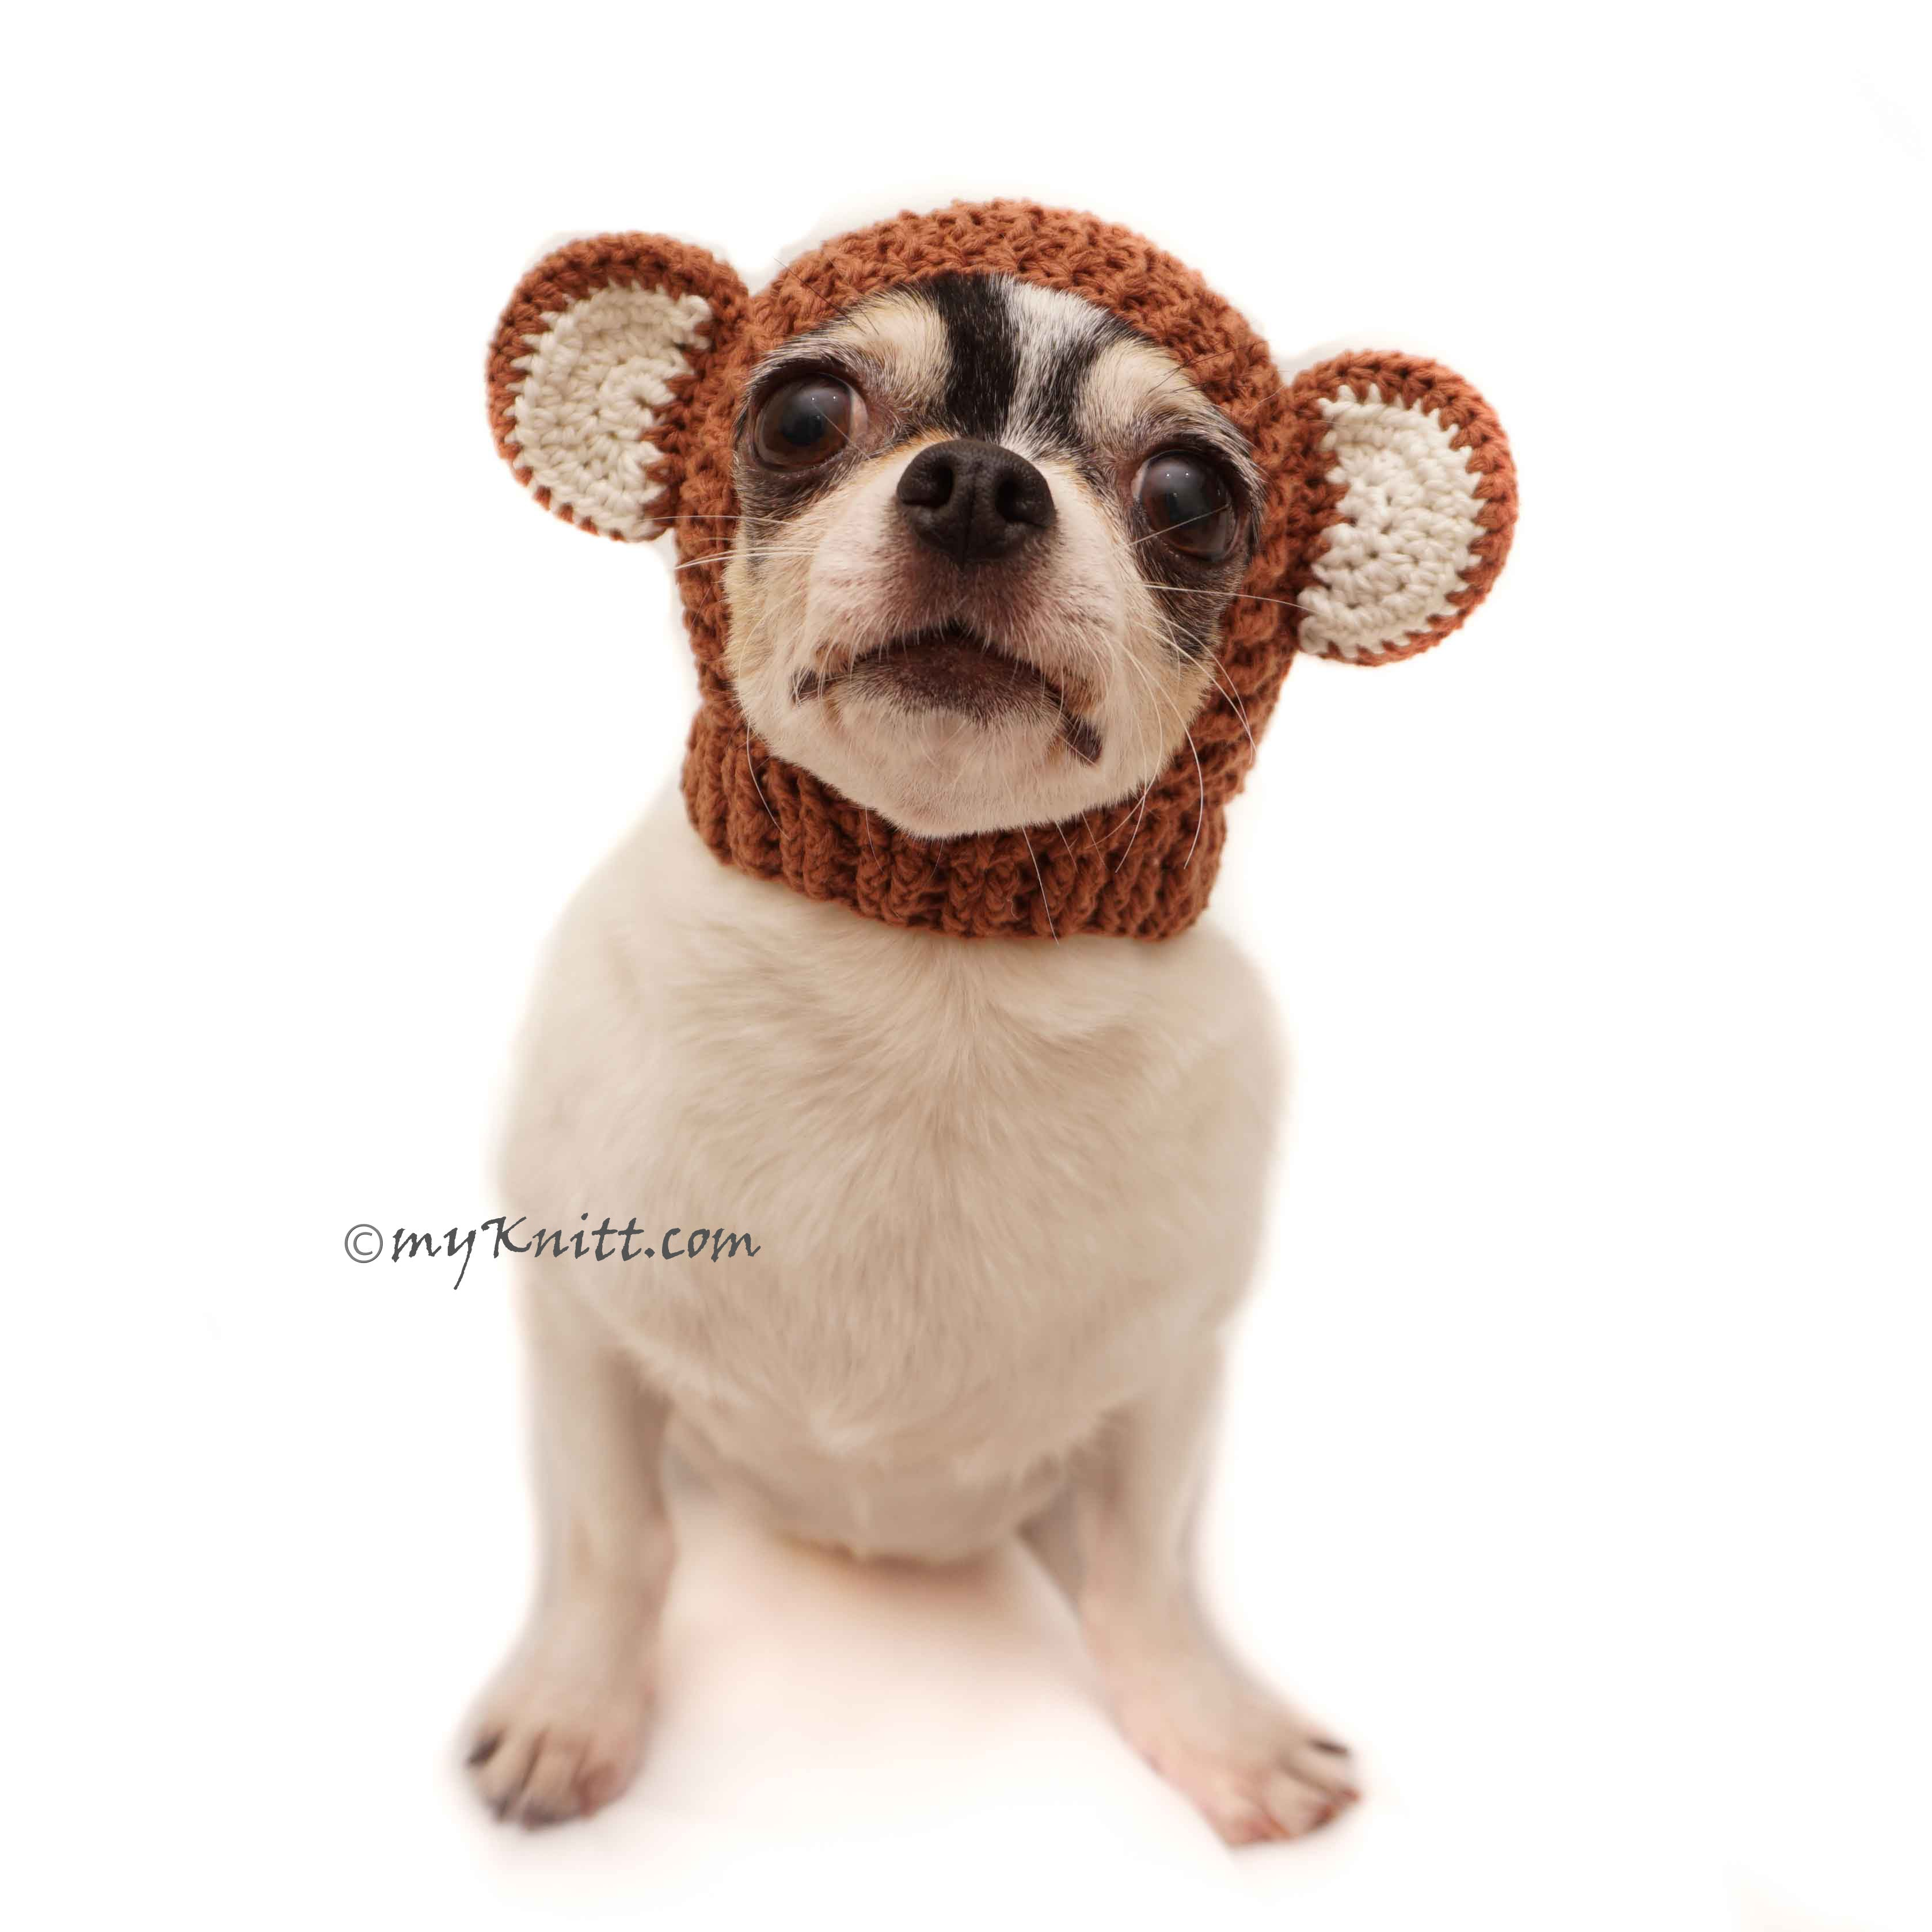 Monkey Dog Hats, Crochet Dog Hat, Cat Hats DB8 by Myknitt